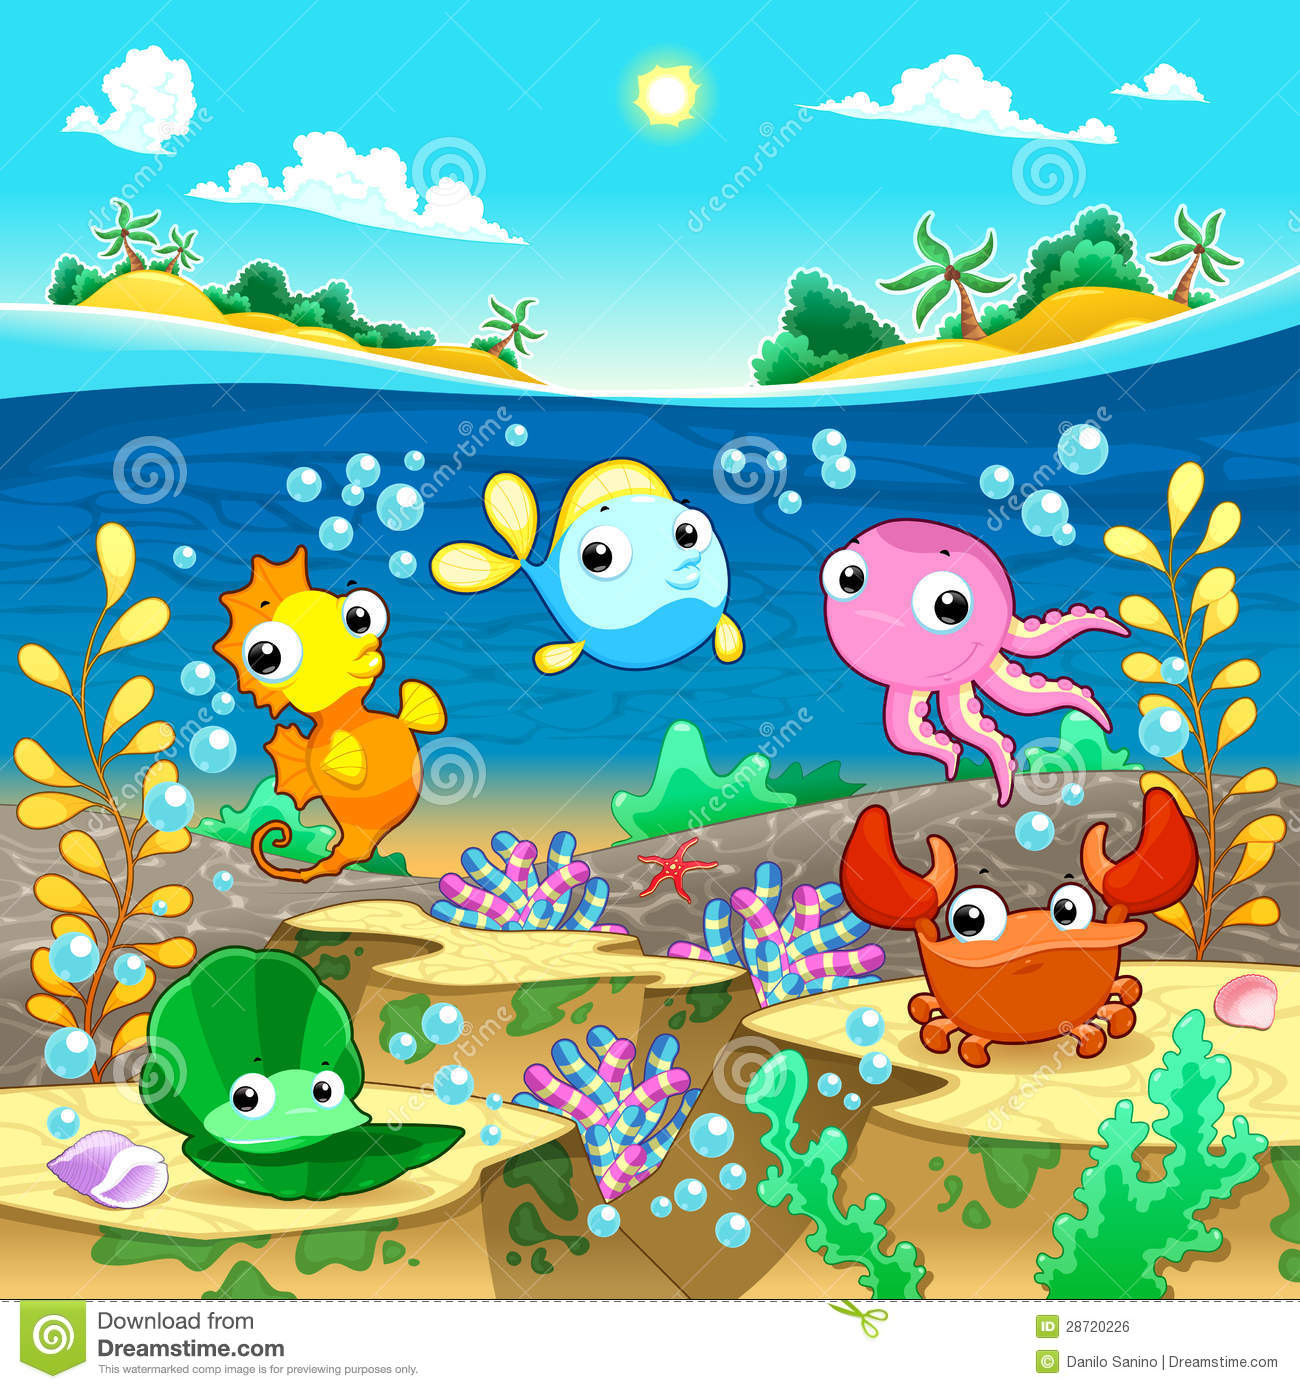 Free clipart under the sea.